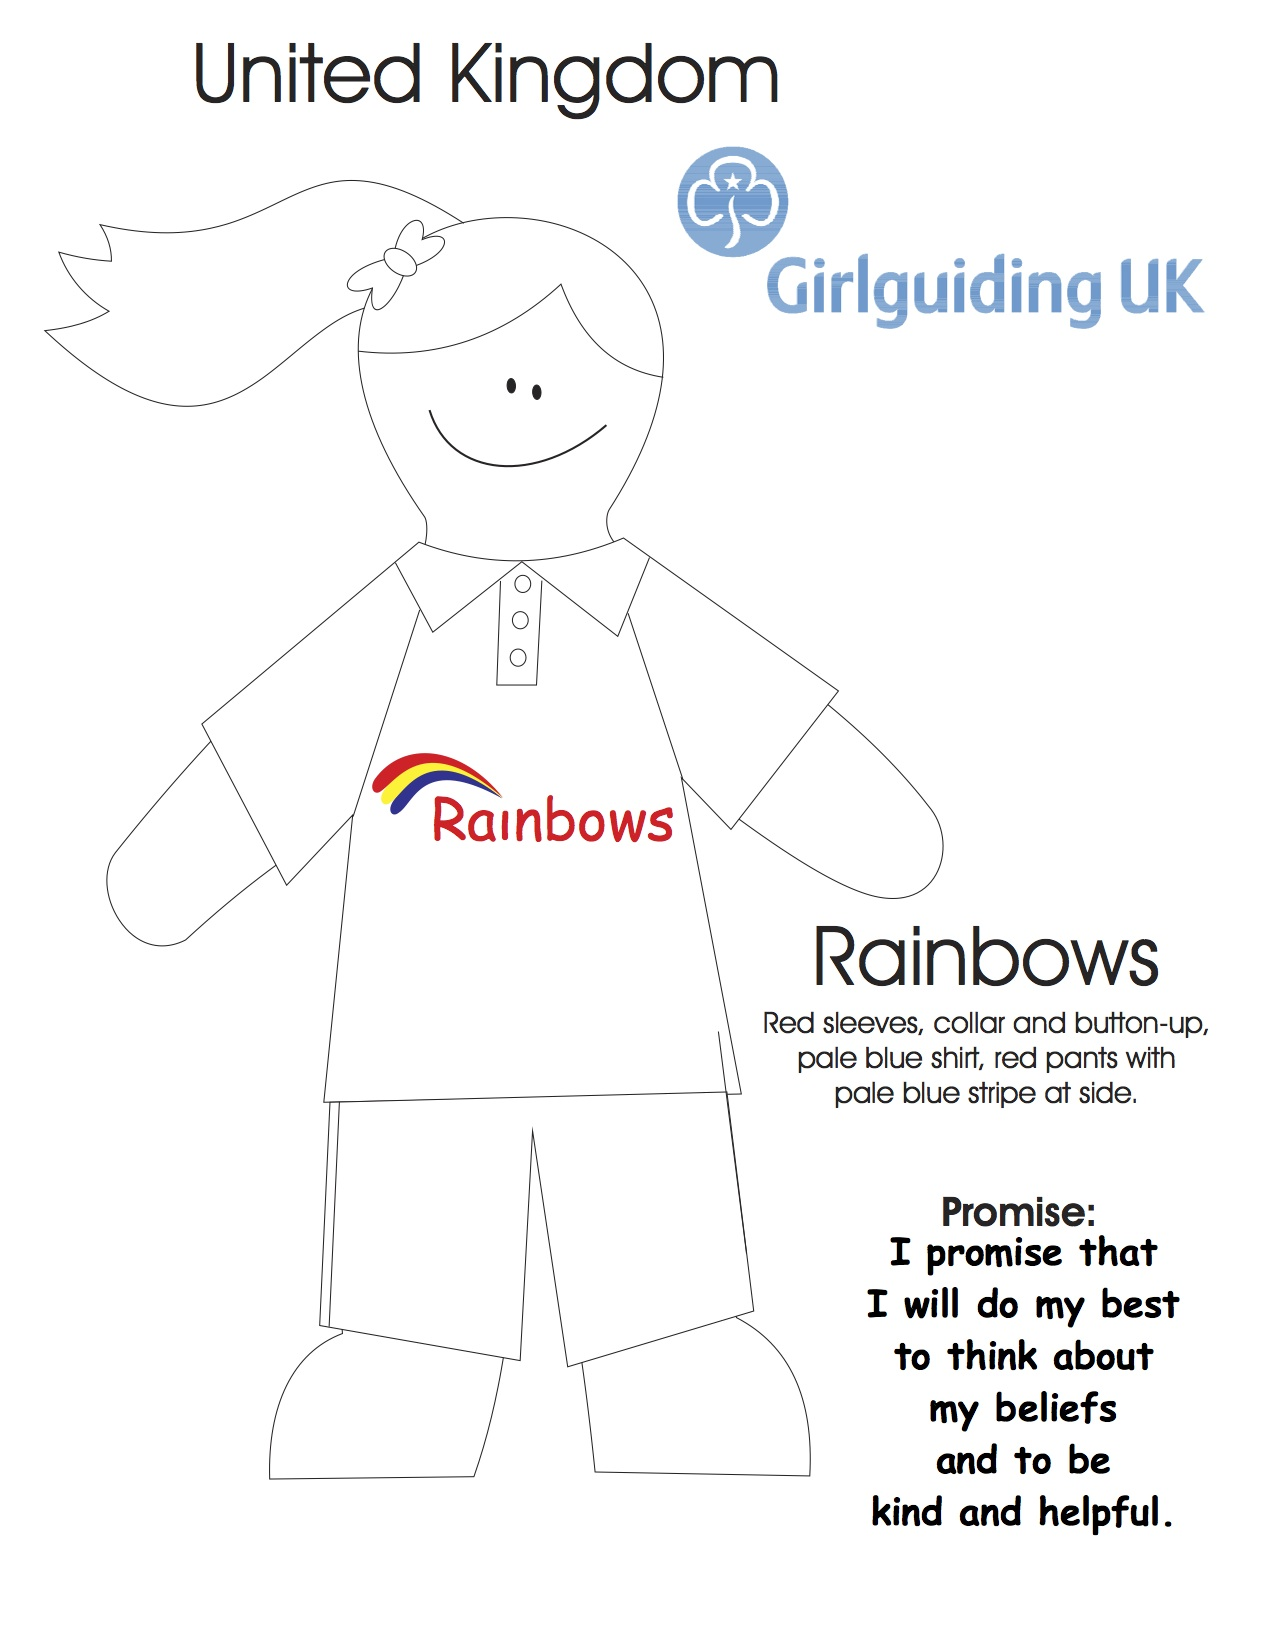 United Kingdom Rainbow Colouring Sheet